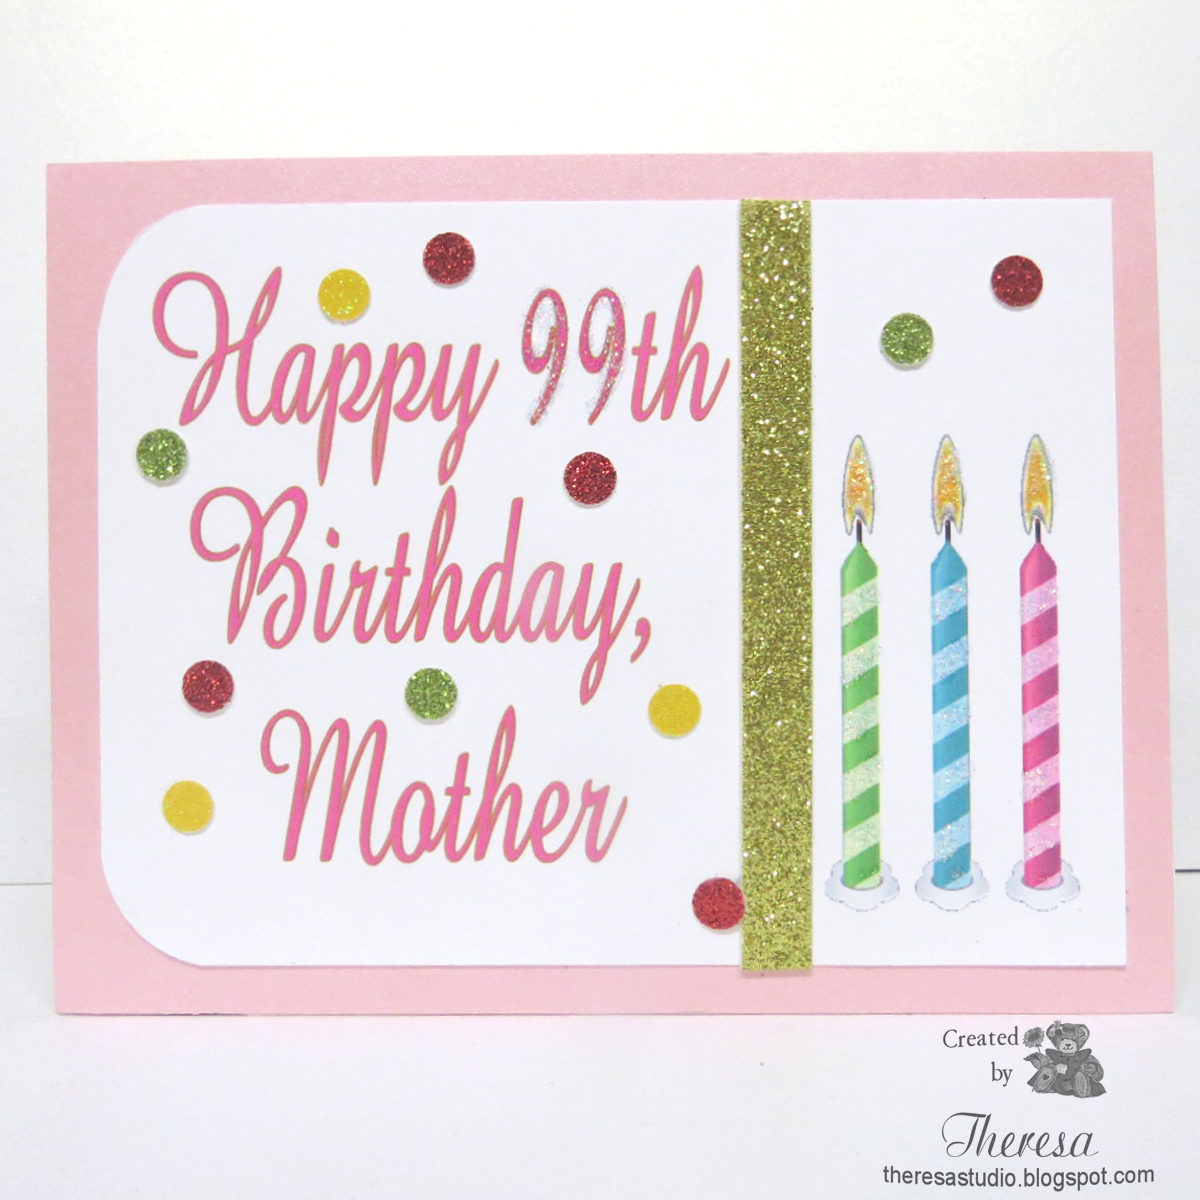 Today I Am Sharing A Special Card That Created For My Mothers 99th Birthday Is Later This Month Made Similar Her Couple Years Ago